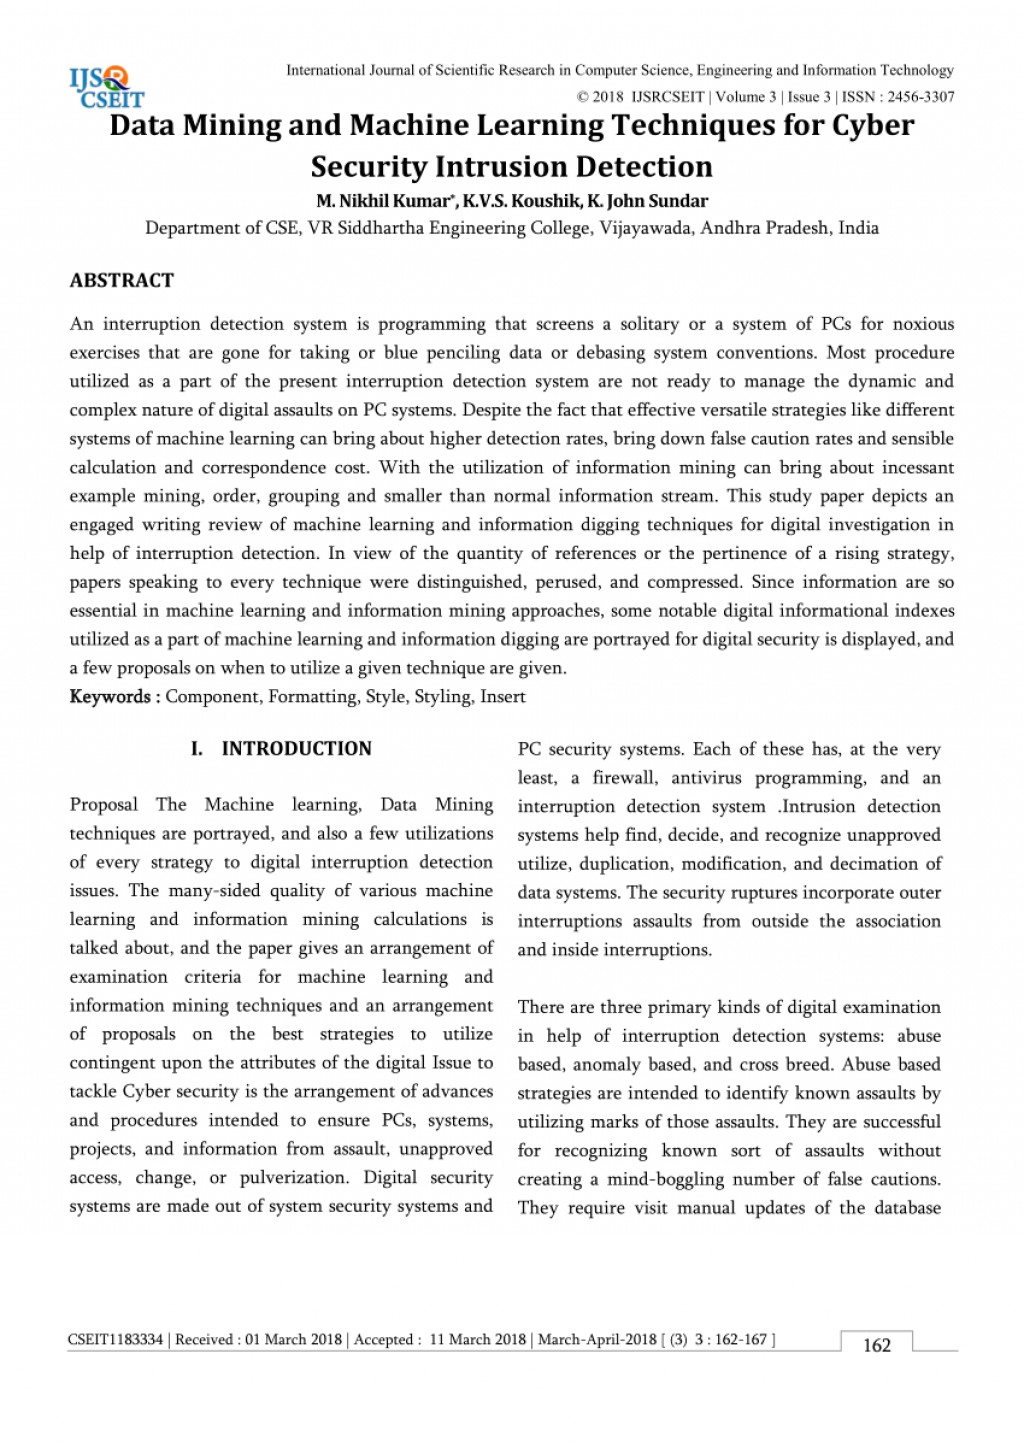 003 Research Paper Cyber Security Ieee Wondrous Large